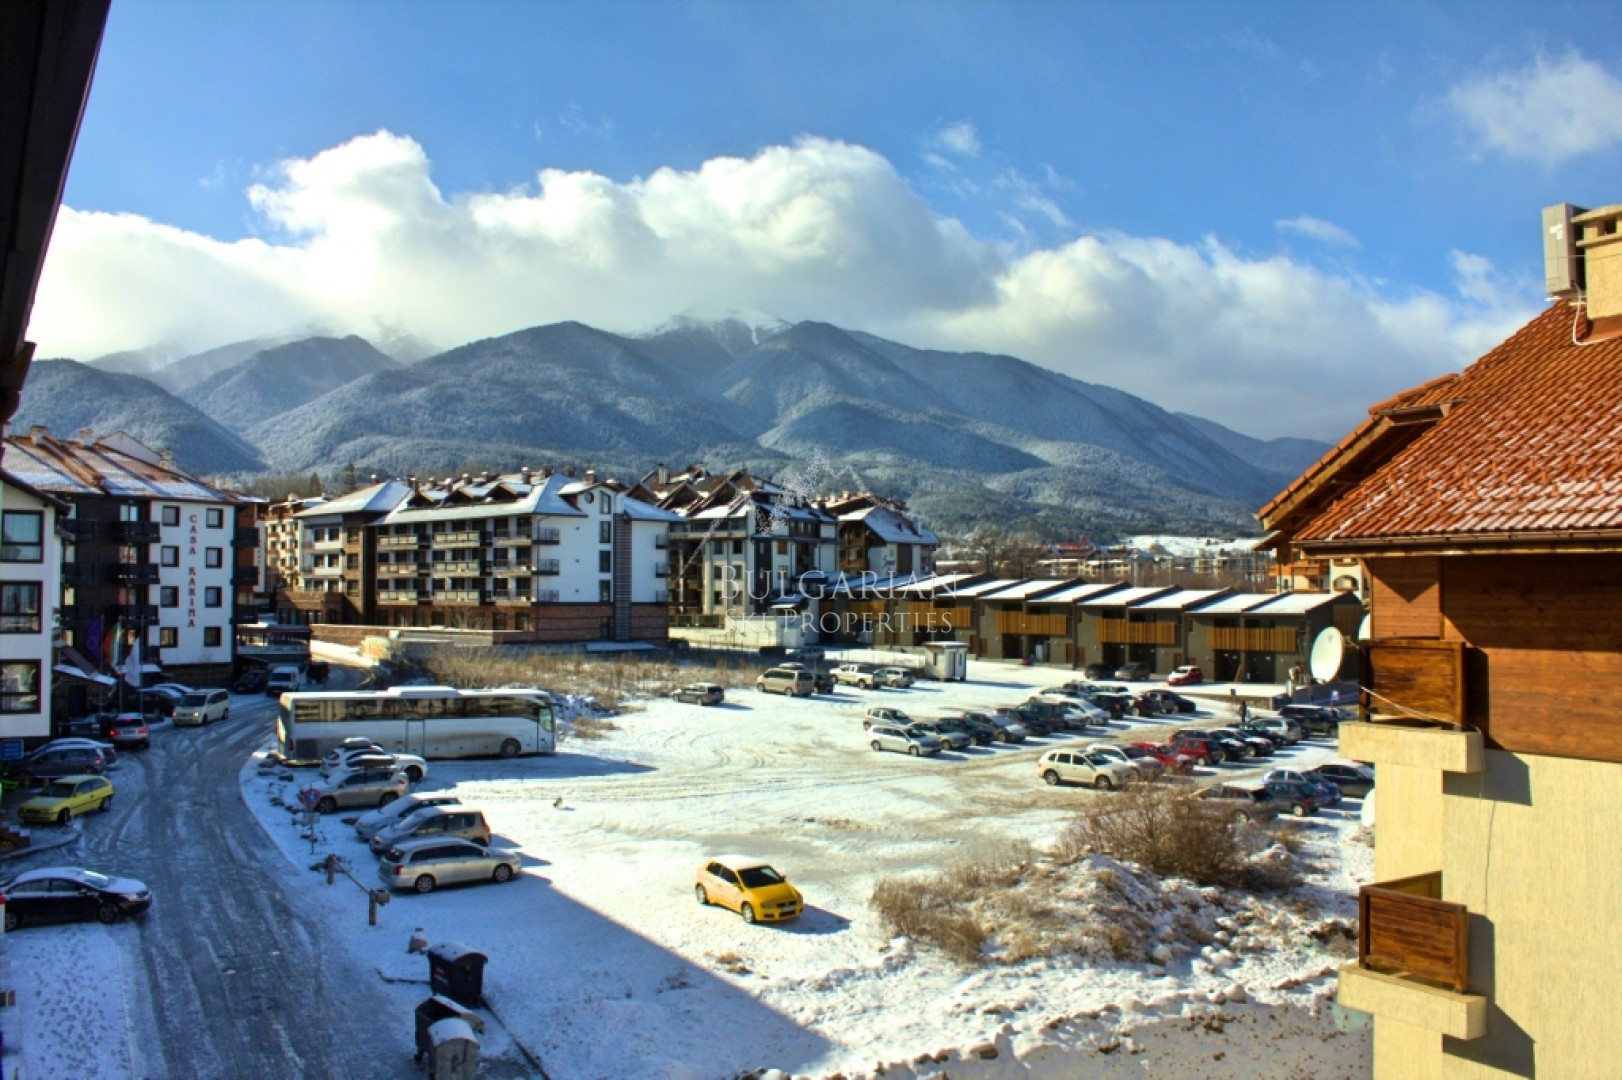 Bansko, Aspen House: furnished one bedroom apartment for sale next to Ski lift